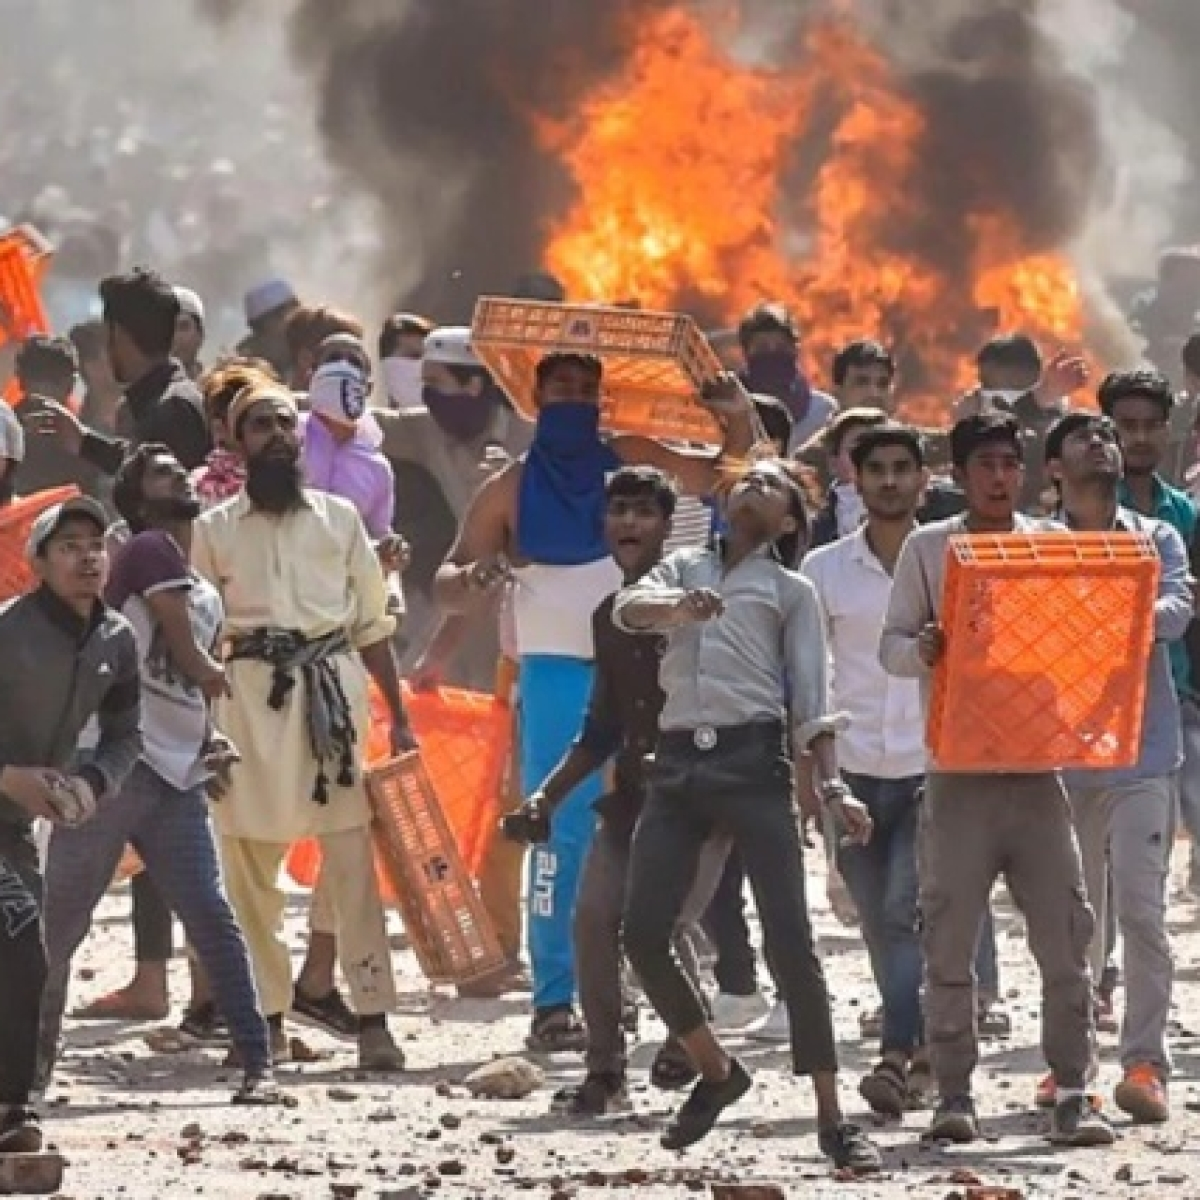 Delhi riots: Delhi Police find clues of foreign funding, says funds received from Oman, UK in Jan